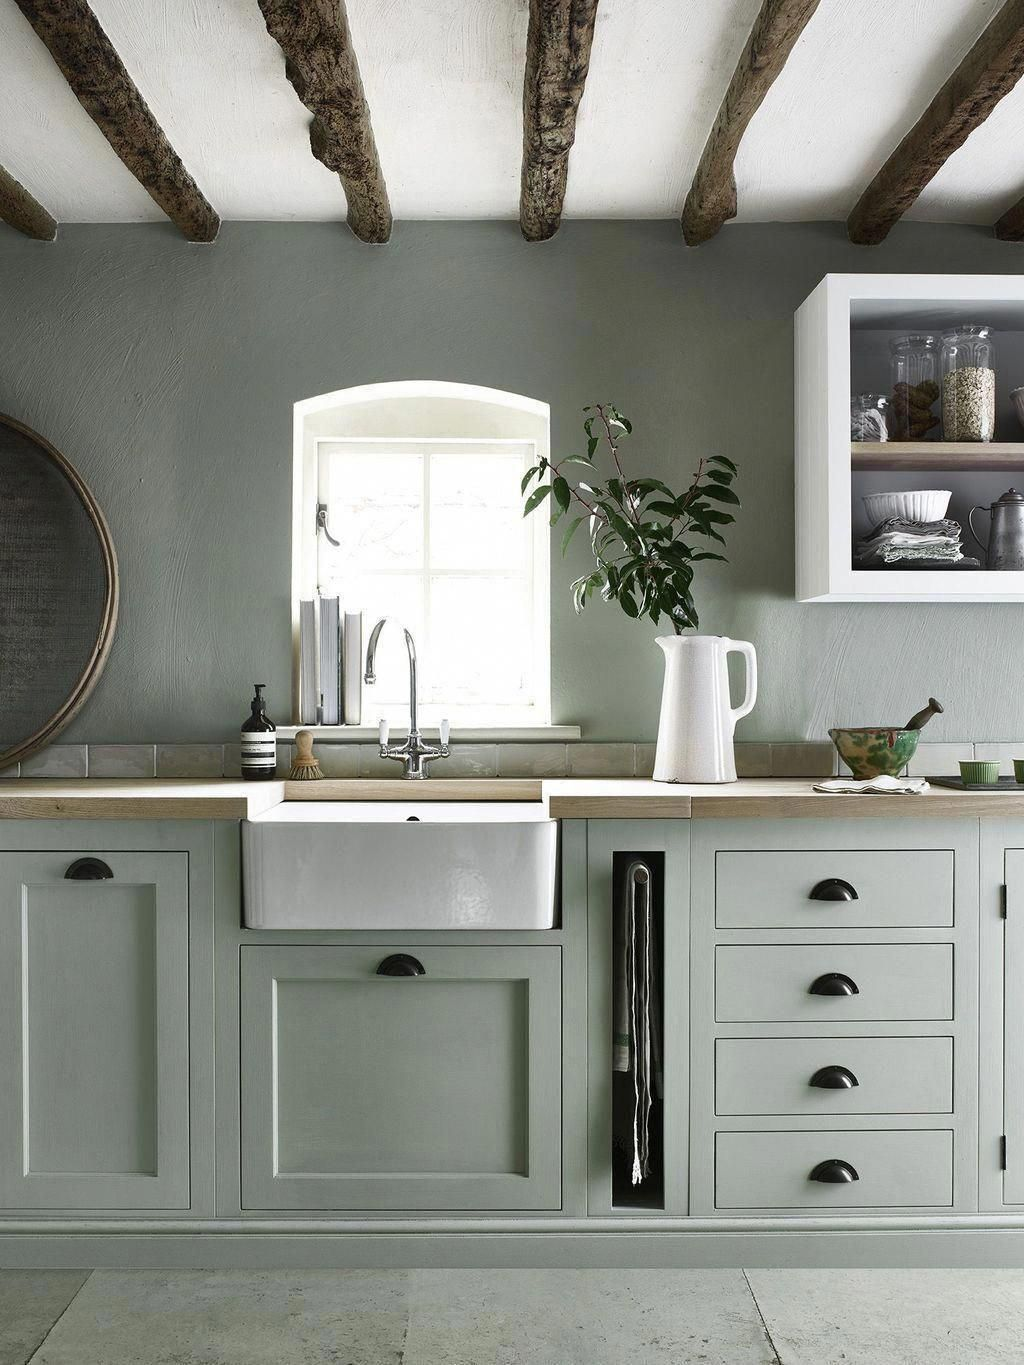 46 Amazing Painted Kitchen Cabinets Paint Color Countrykitchen Paintingkitchencabinets In 2020 Kitchen Cabinet Colors Kitchen Cabinet Trends Kitchen Design Small